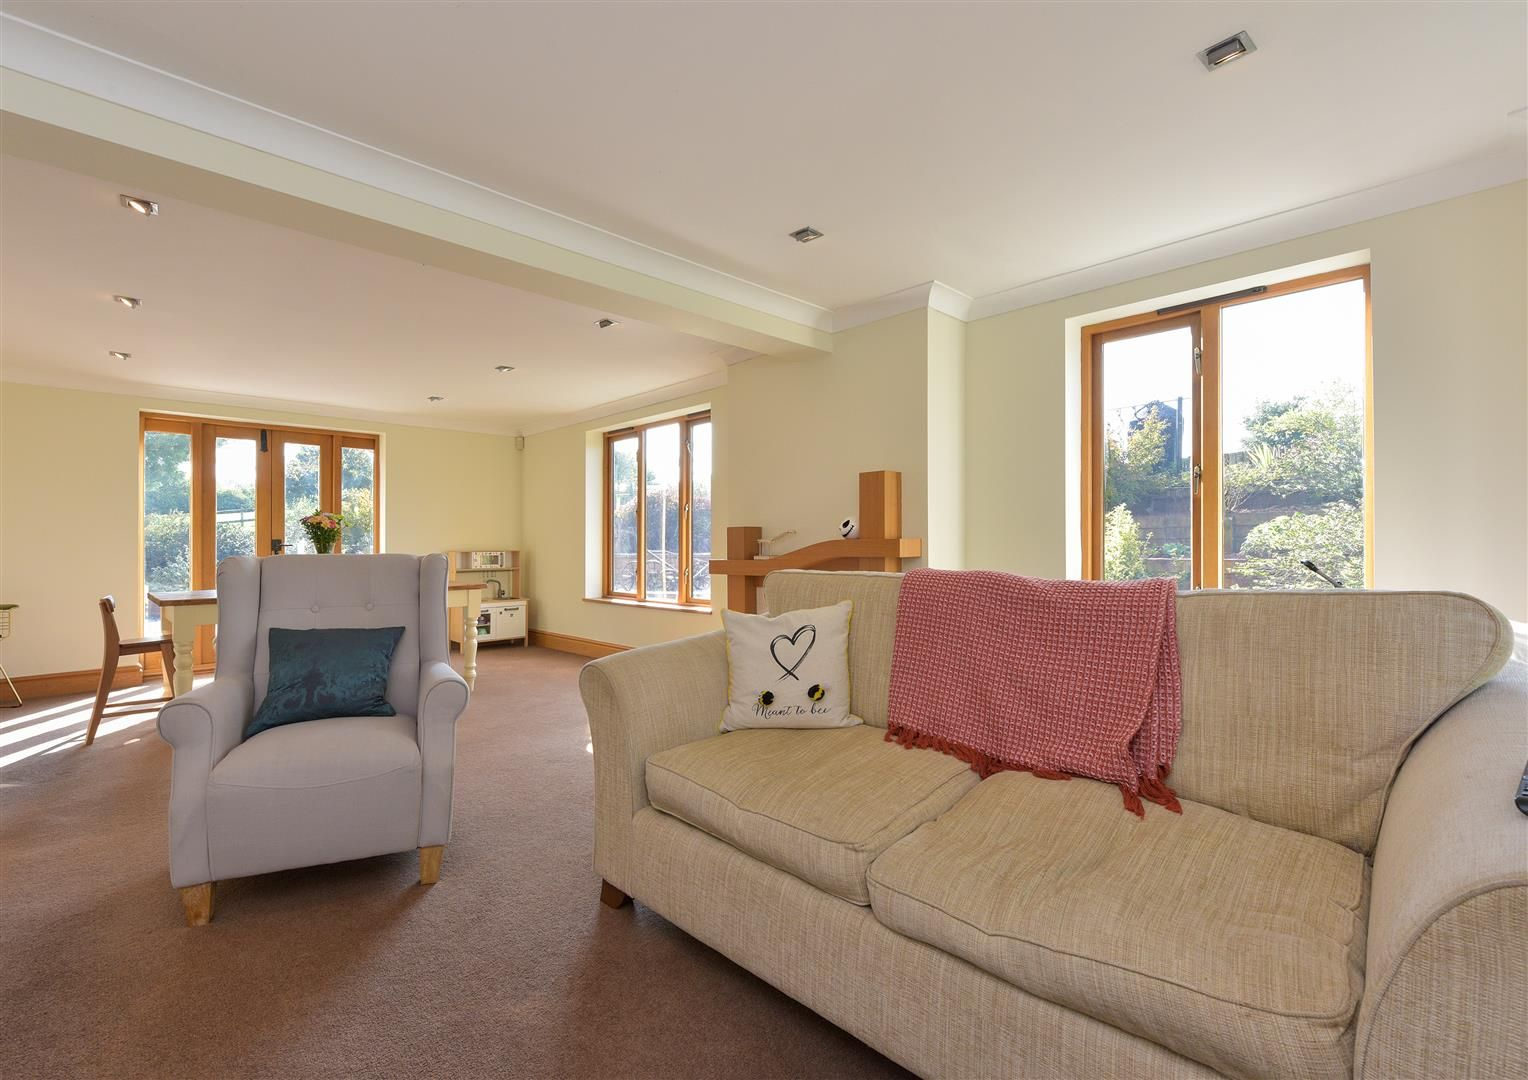 5 bed detached for sale in Broome  - Property Image 35